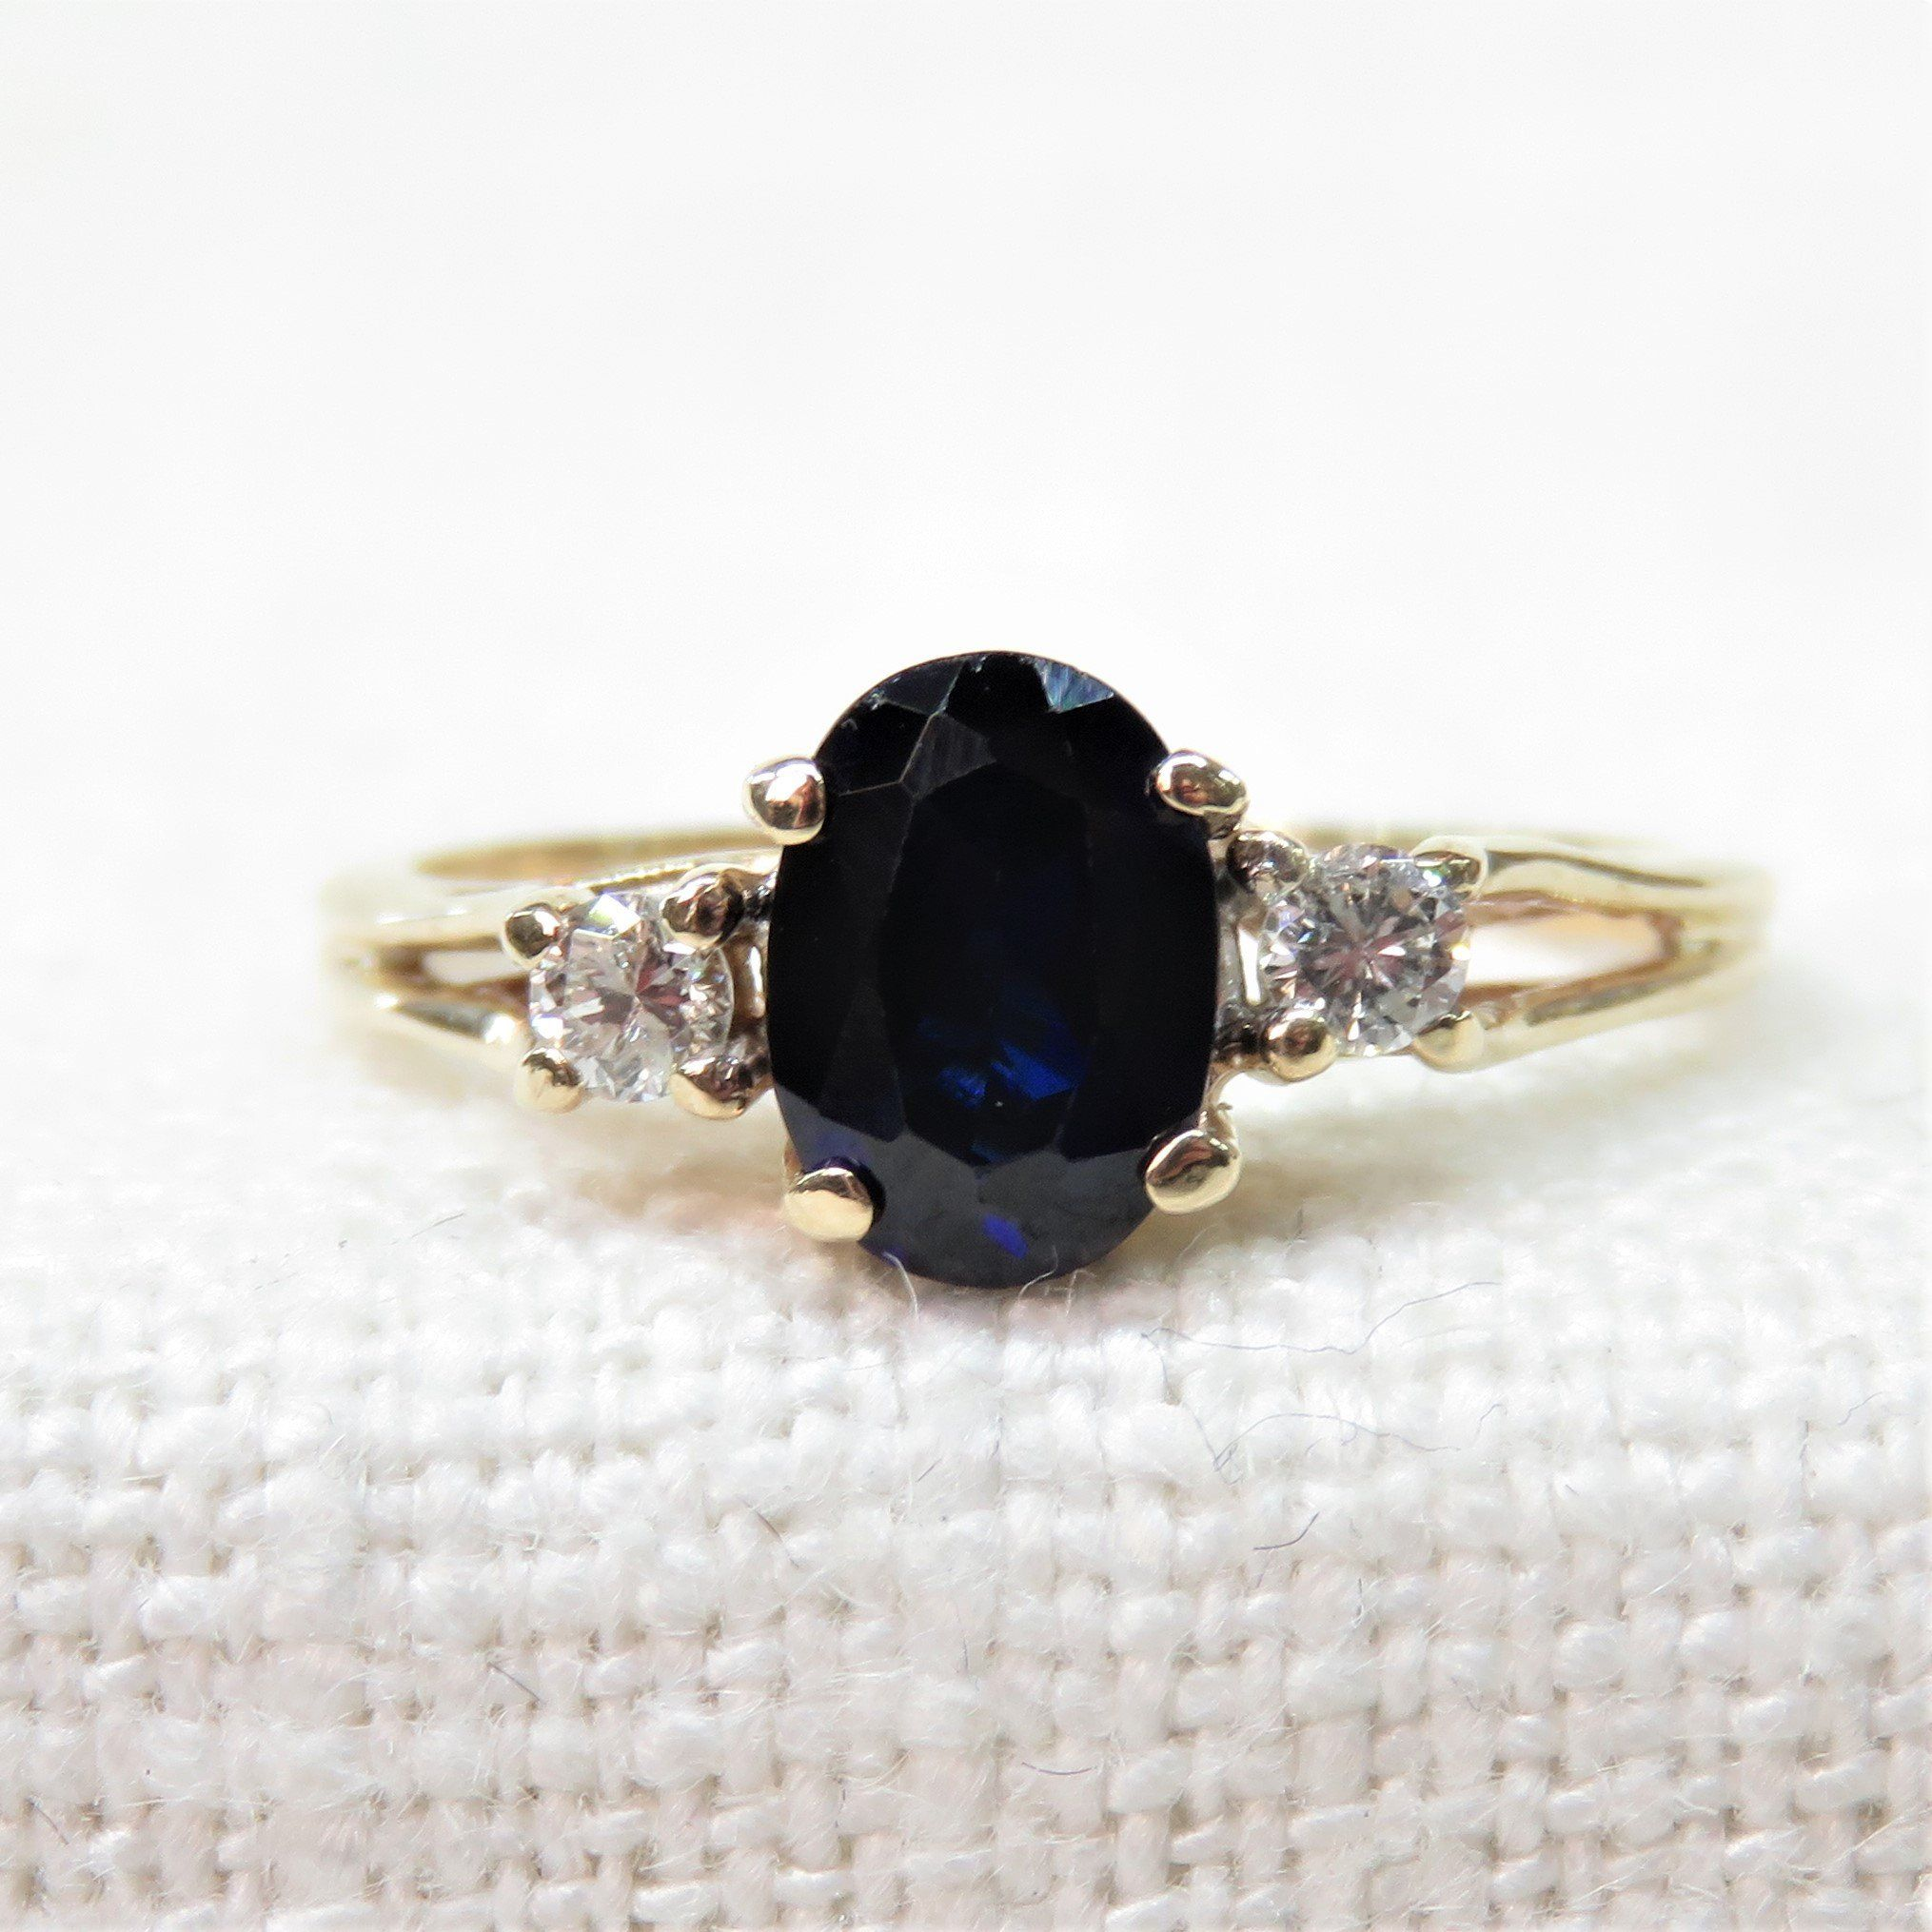 10k Gold Diamond And Sapphire Ring Vintage Sapphire Ring Natural Blue Sapphire Vint Vintage Engagement Rings Sapphire Vintage Sapphire Ring Vintage Sapphire